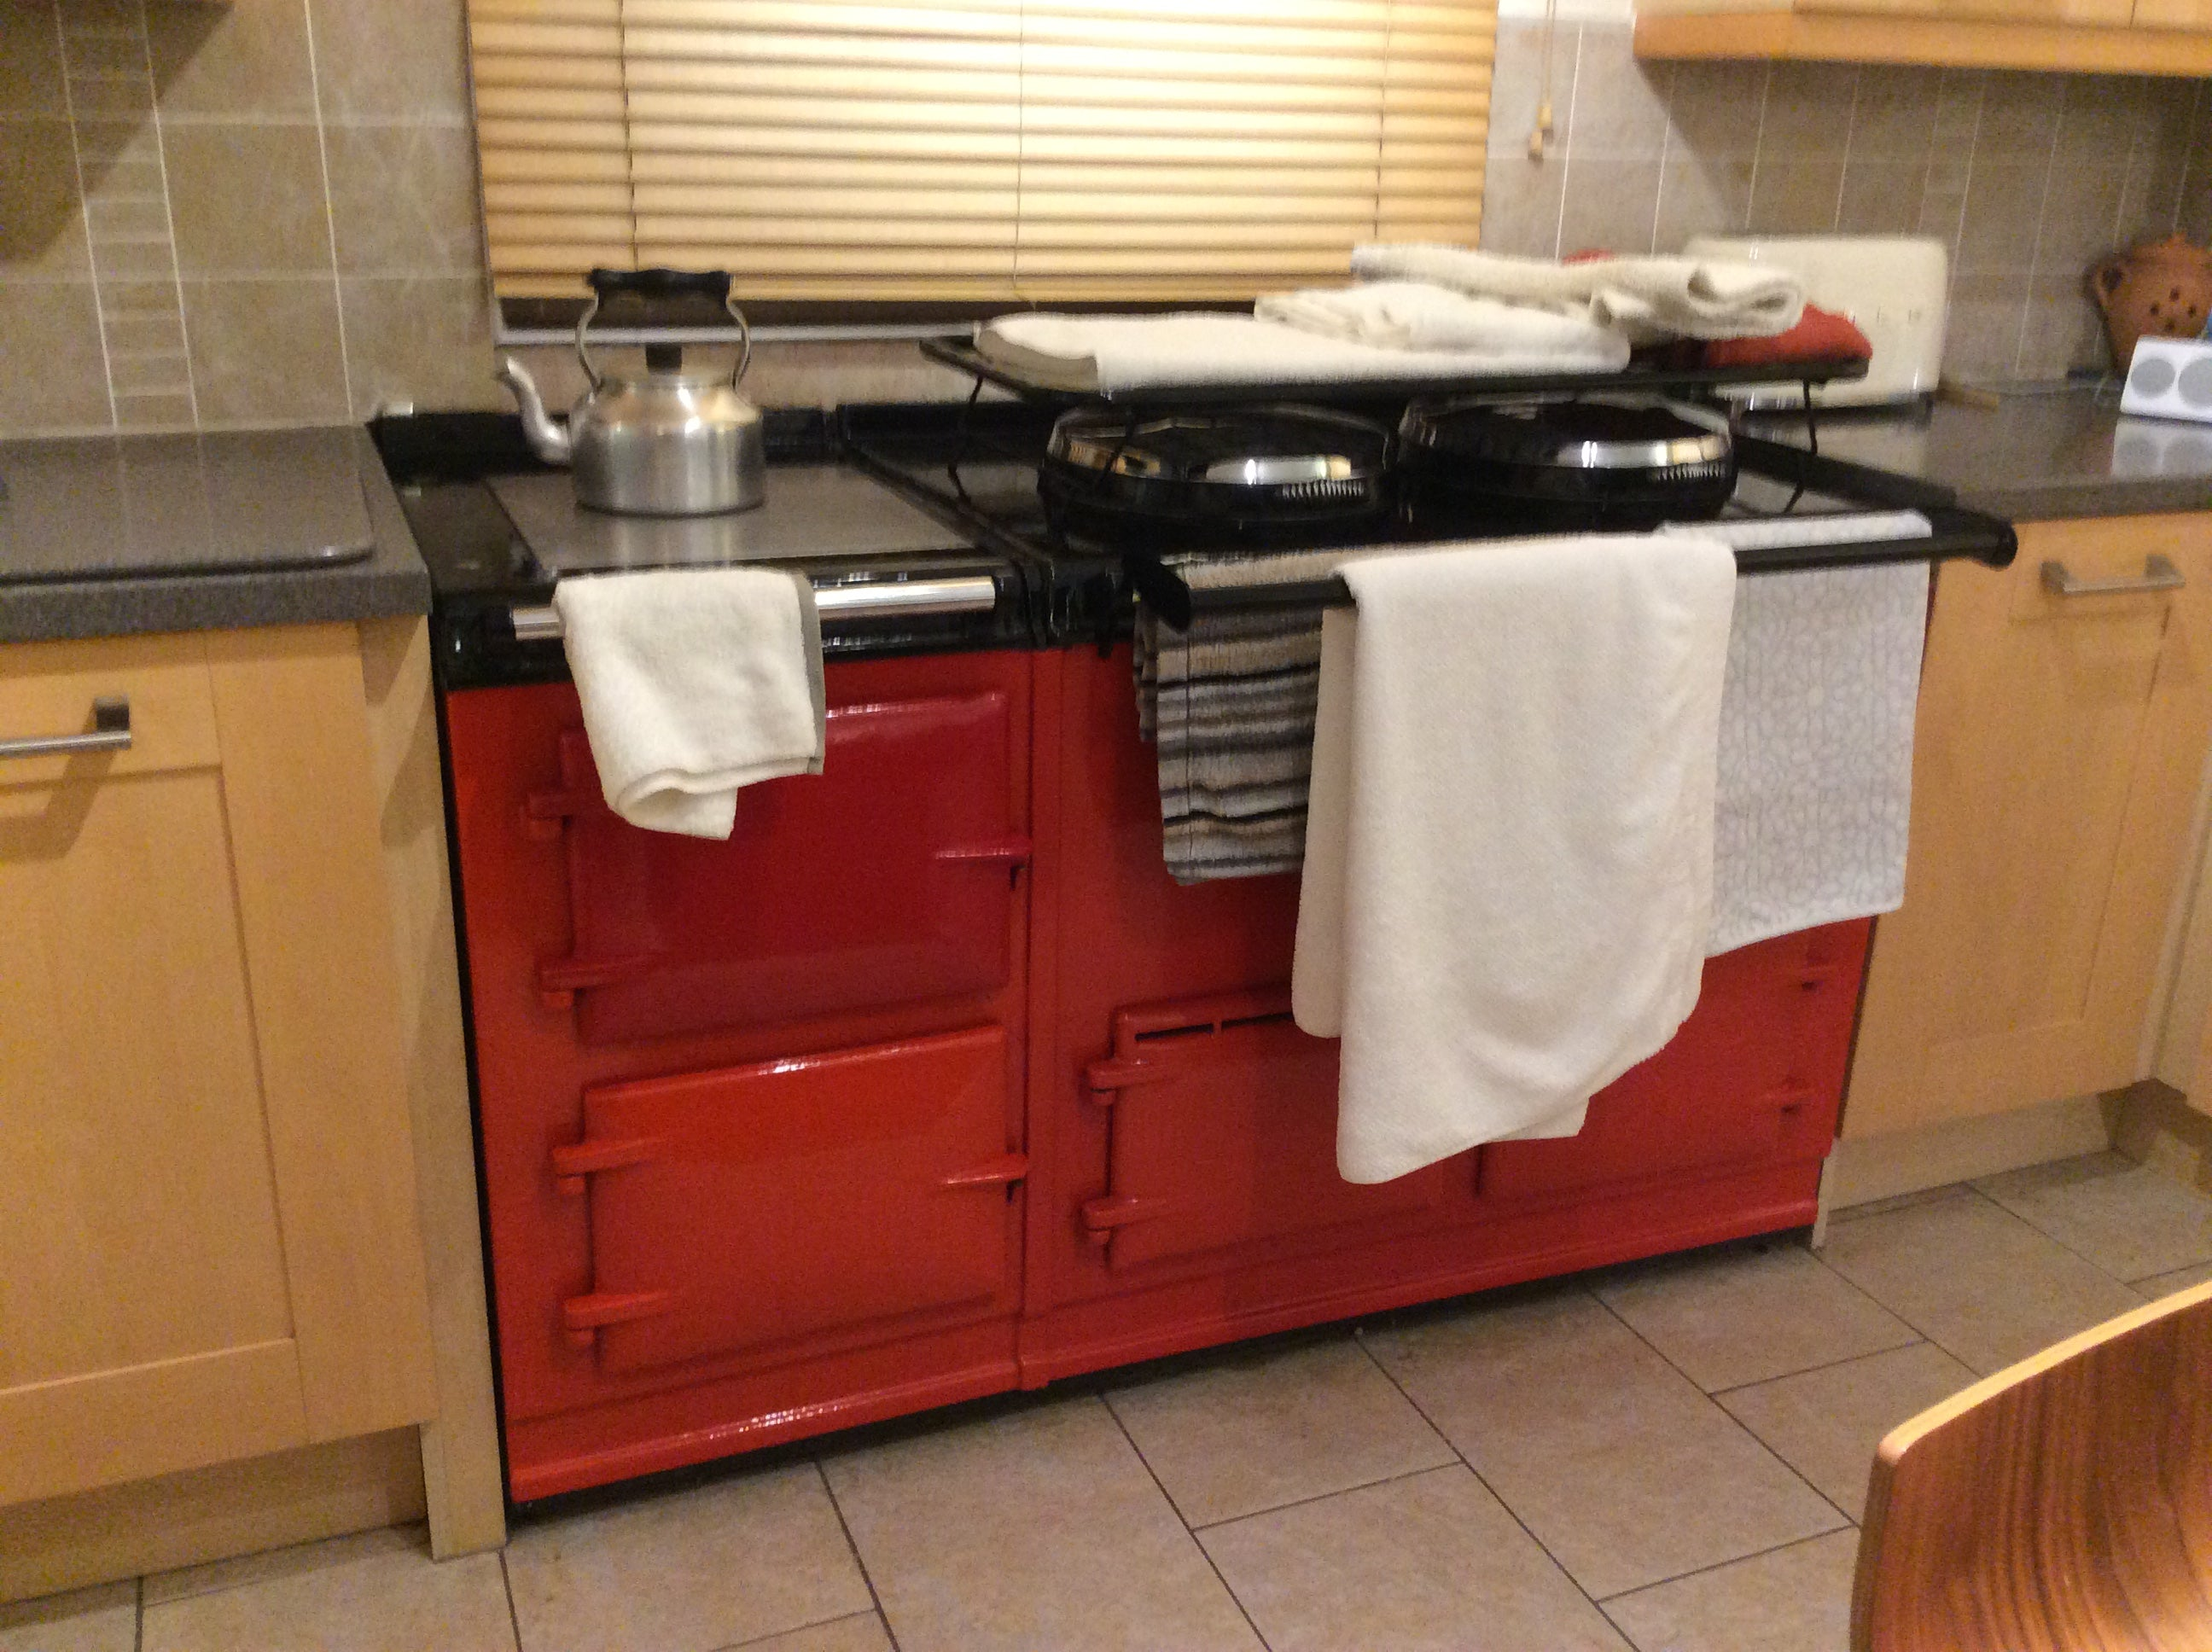 Red range cooker drying rack and rail shown